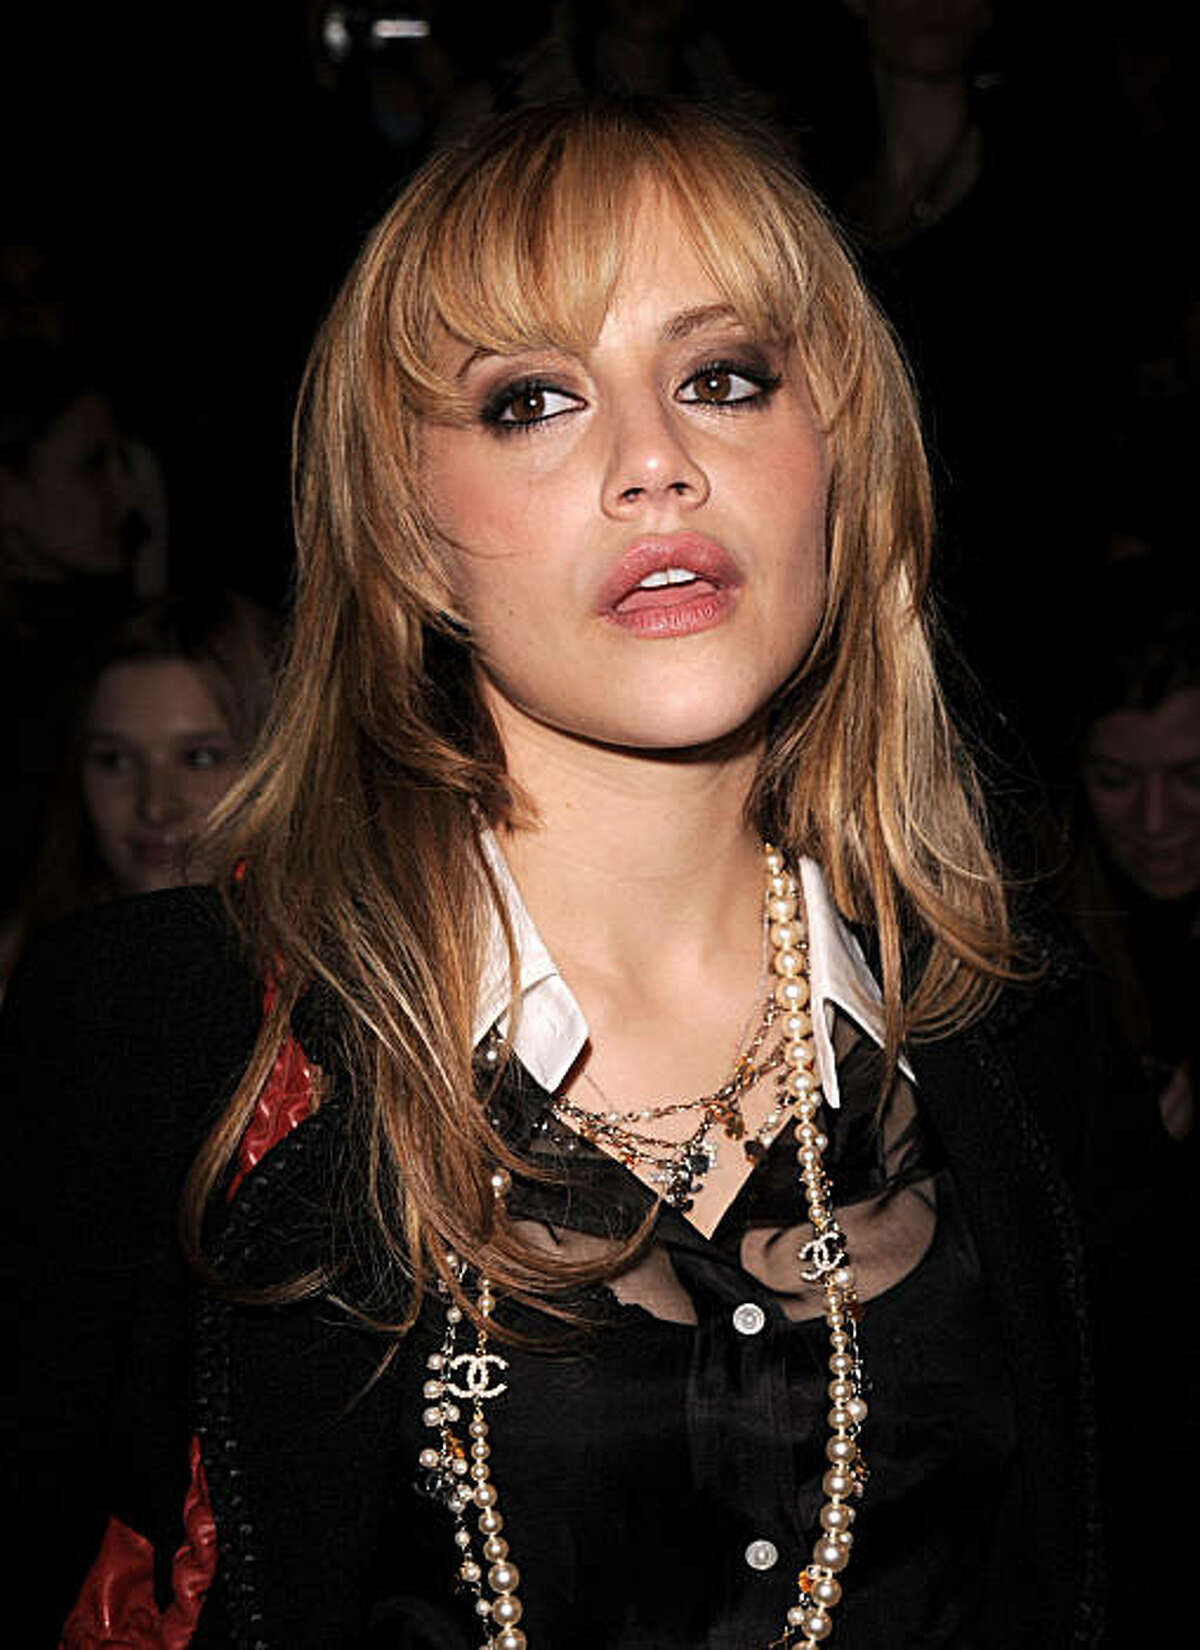 FILE - In this Feb. 4, 2008 file photo, actress Brittany Murphy attends the Max Azria 2008 Fall Collection during Fashion Week, in New York. A Los Angeles hospital spokeswoman says actress Brittany Murphy has died. She was 32. (AP Photo/Peter Kramer, File)